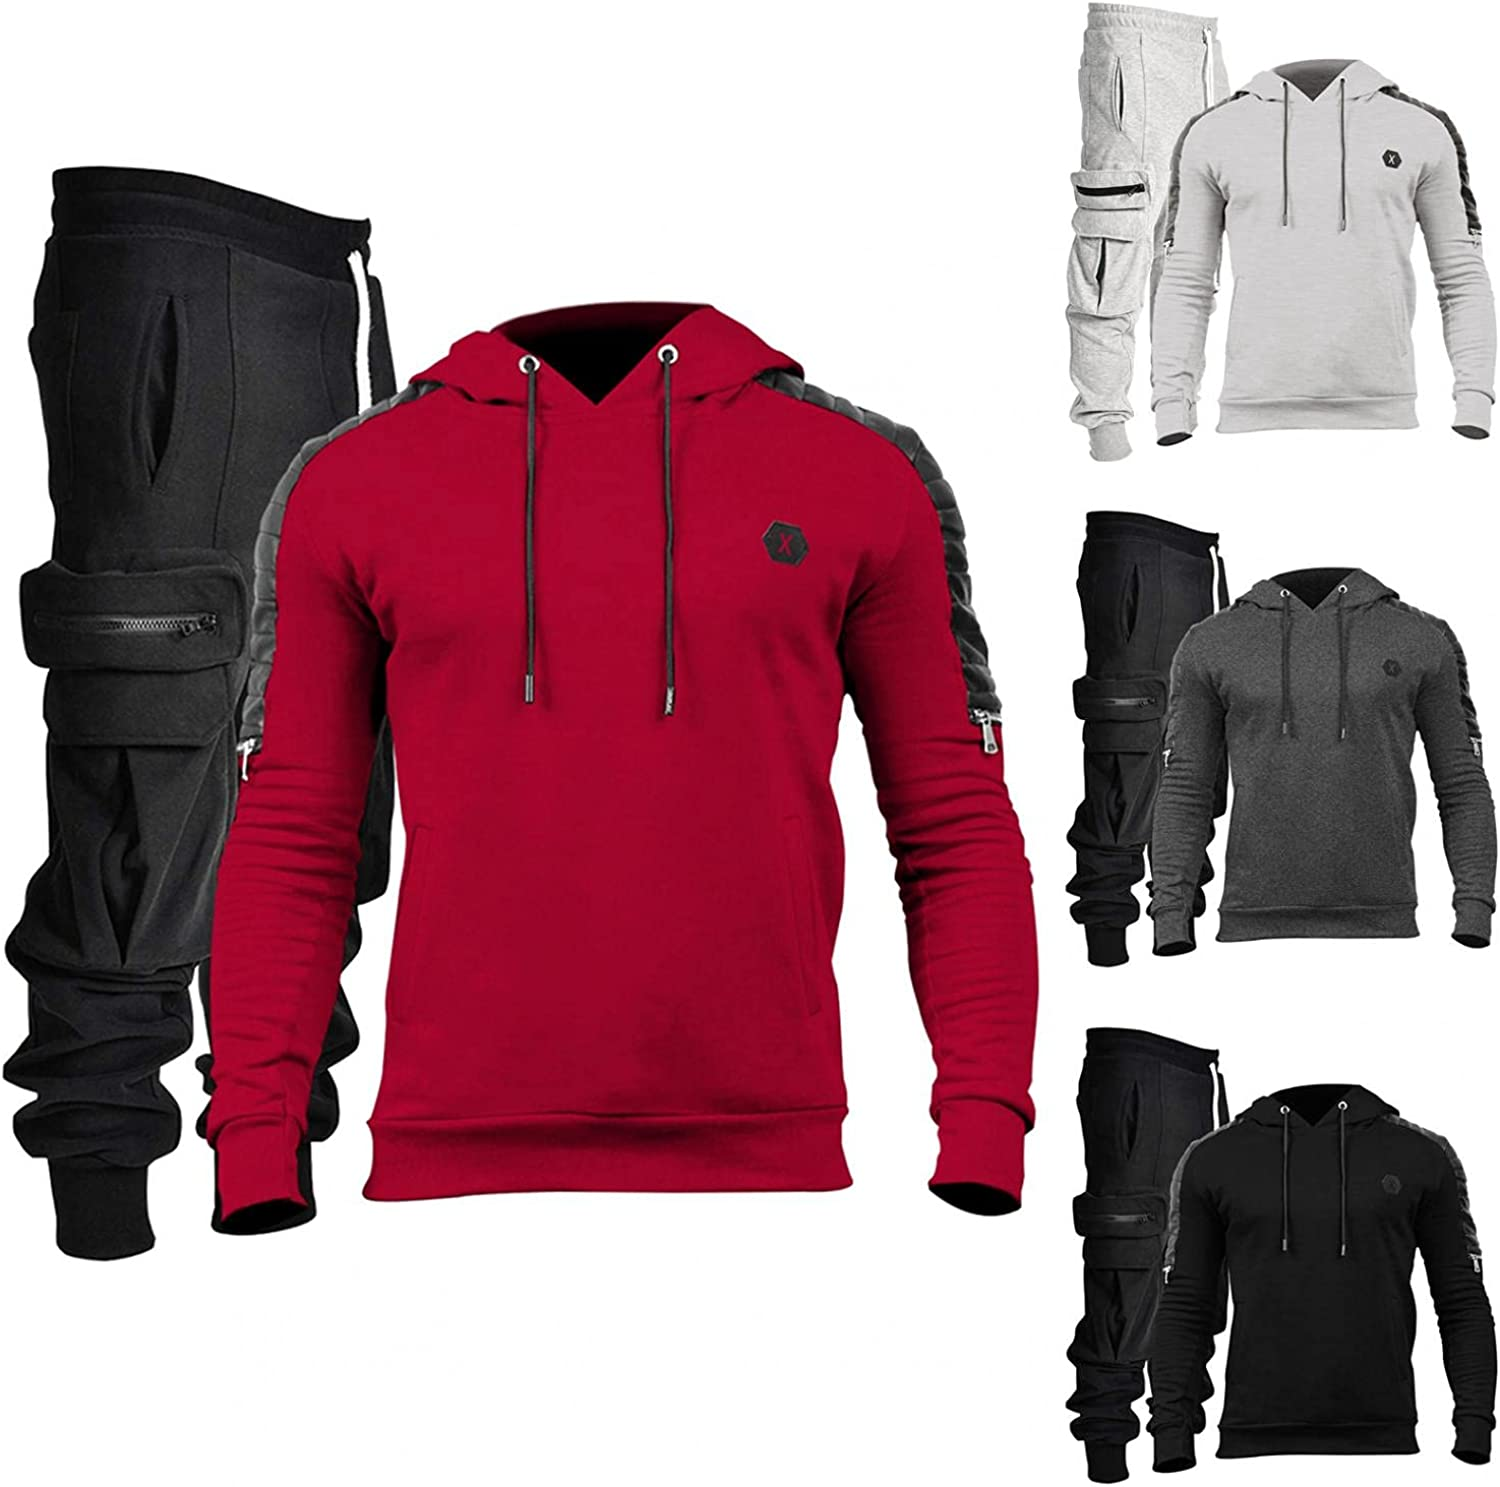 Men's Hooded Sweatshirt Tracksuits Sets Casual Hoodies Pullover & Cargo Pants Classic Regular Fit Sportwear Outfits